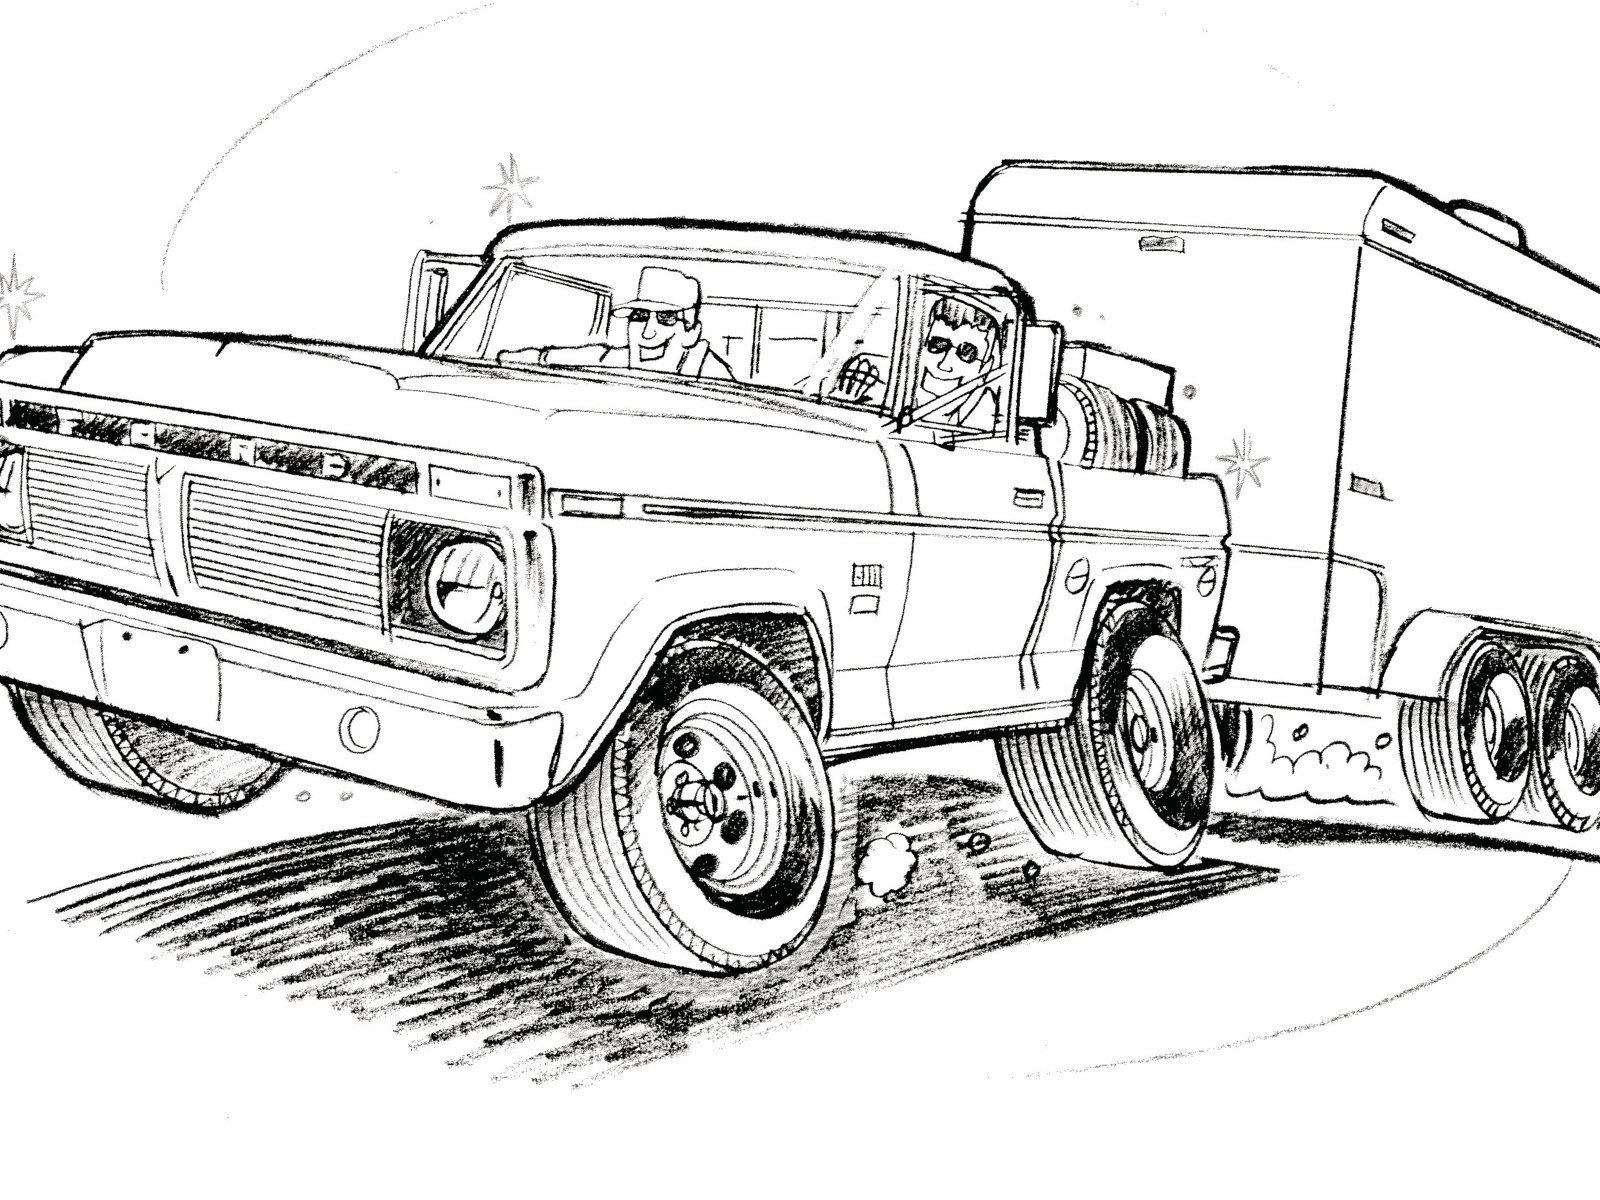 1105cct-04-o+1973-ford-f350-e40d-transmission-swap+drawing